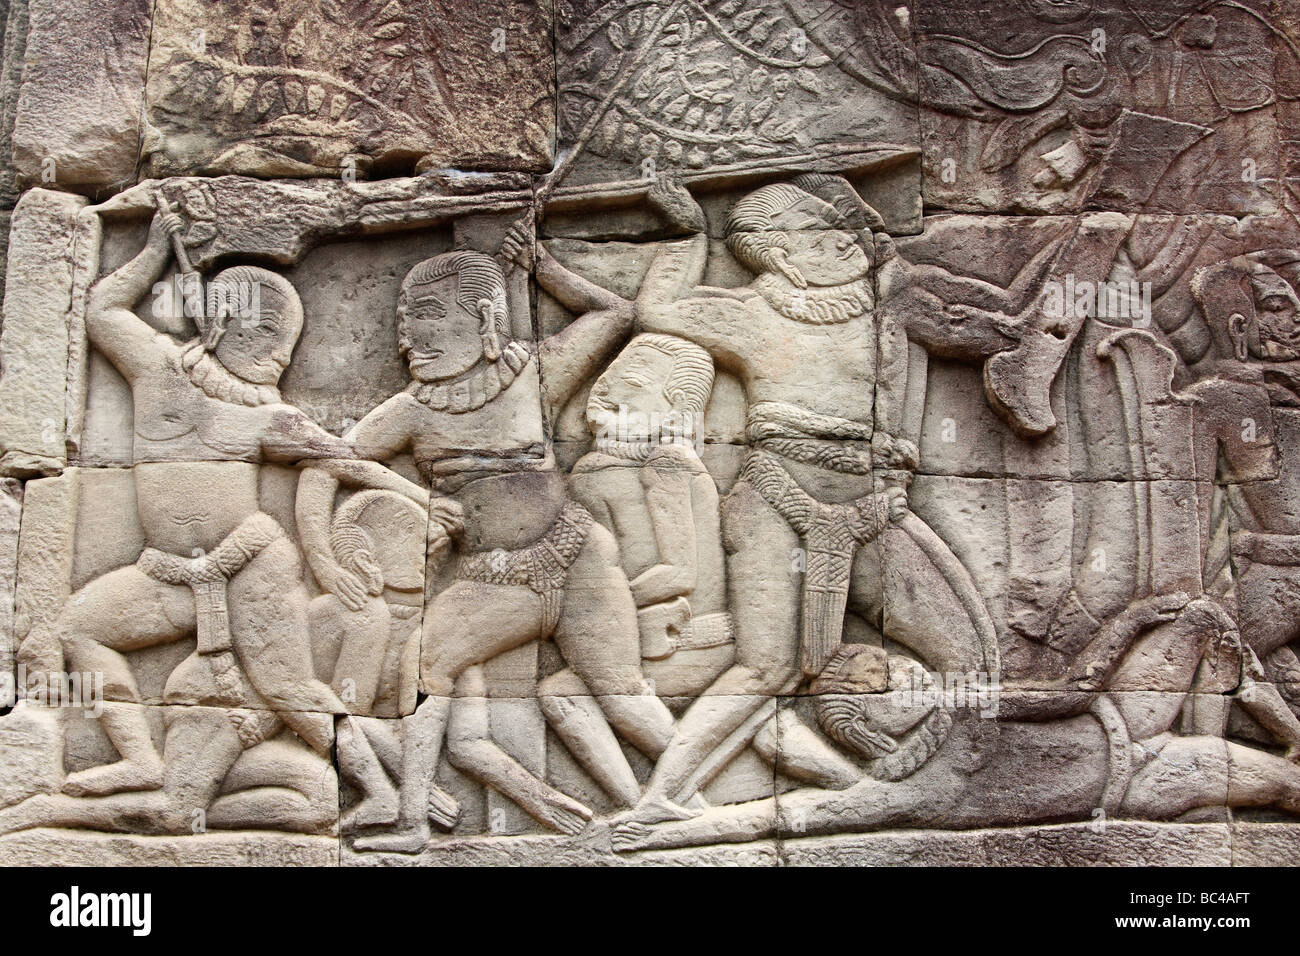 [Bas relief] depicting Khmer battle scene, Bayon temple ruins, [Angkor Thom], Cambodia - Stock Image